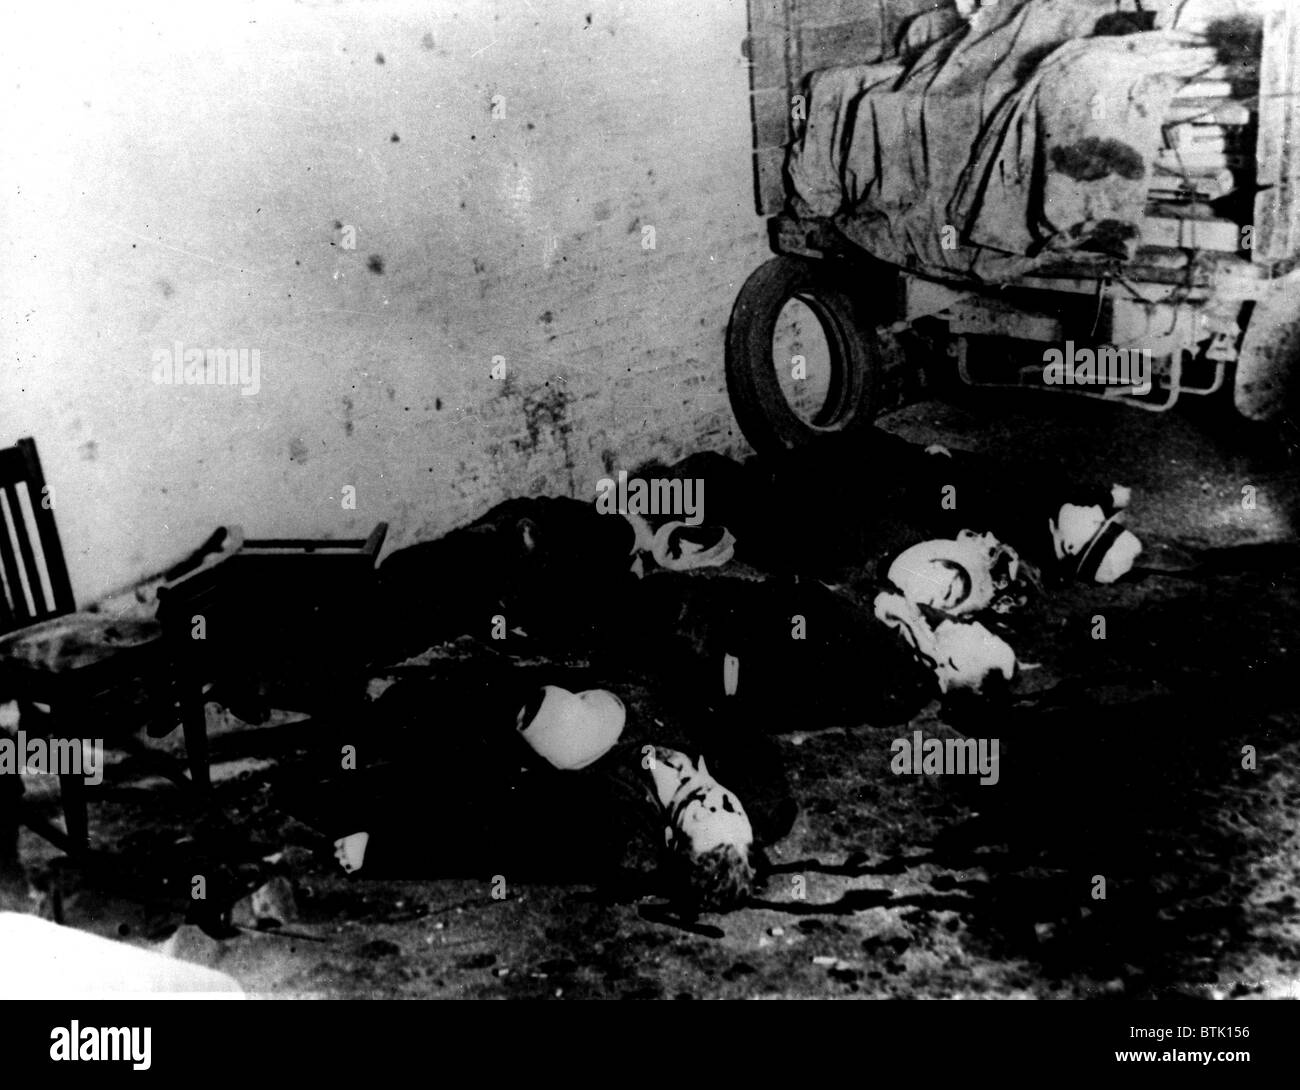 St Valentine S Day Massacre Chicago February 14 1929 Stock Photo